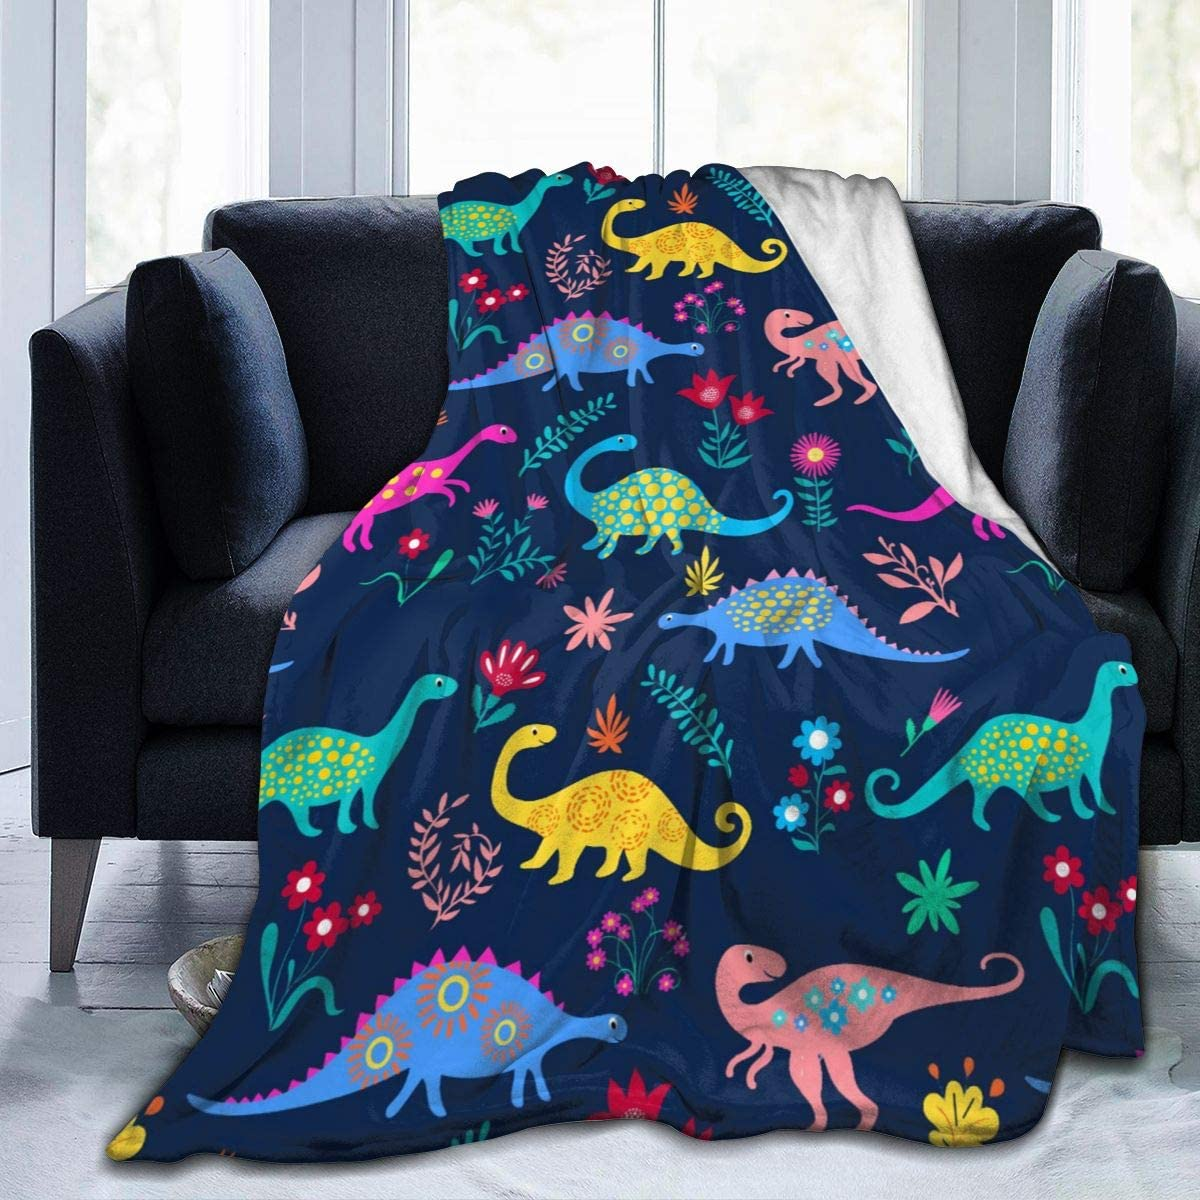 Max 53% OFF Blankets Ultra Soft Throw Warm Large-scale sale Fleece Cozy All